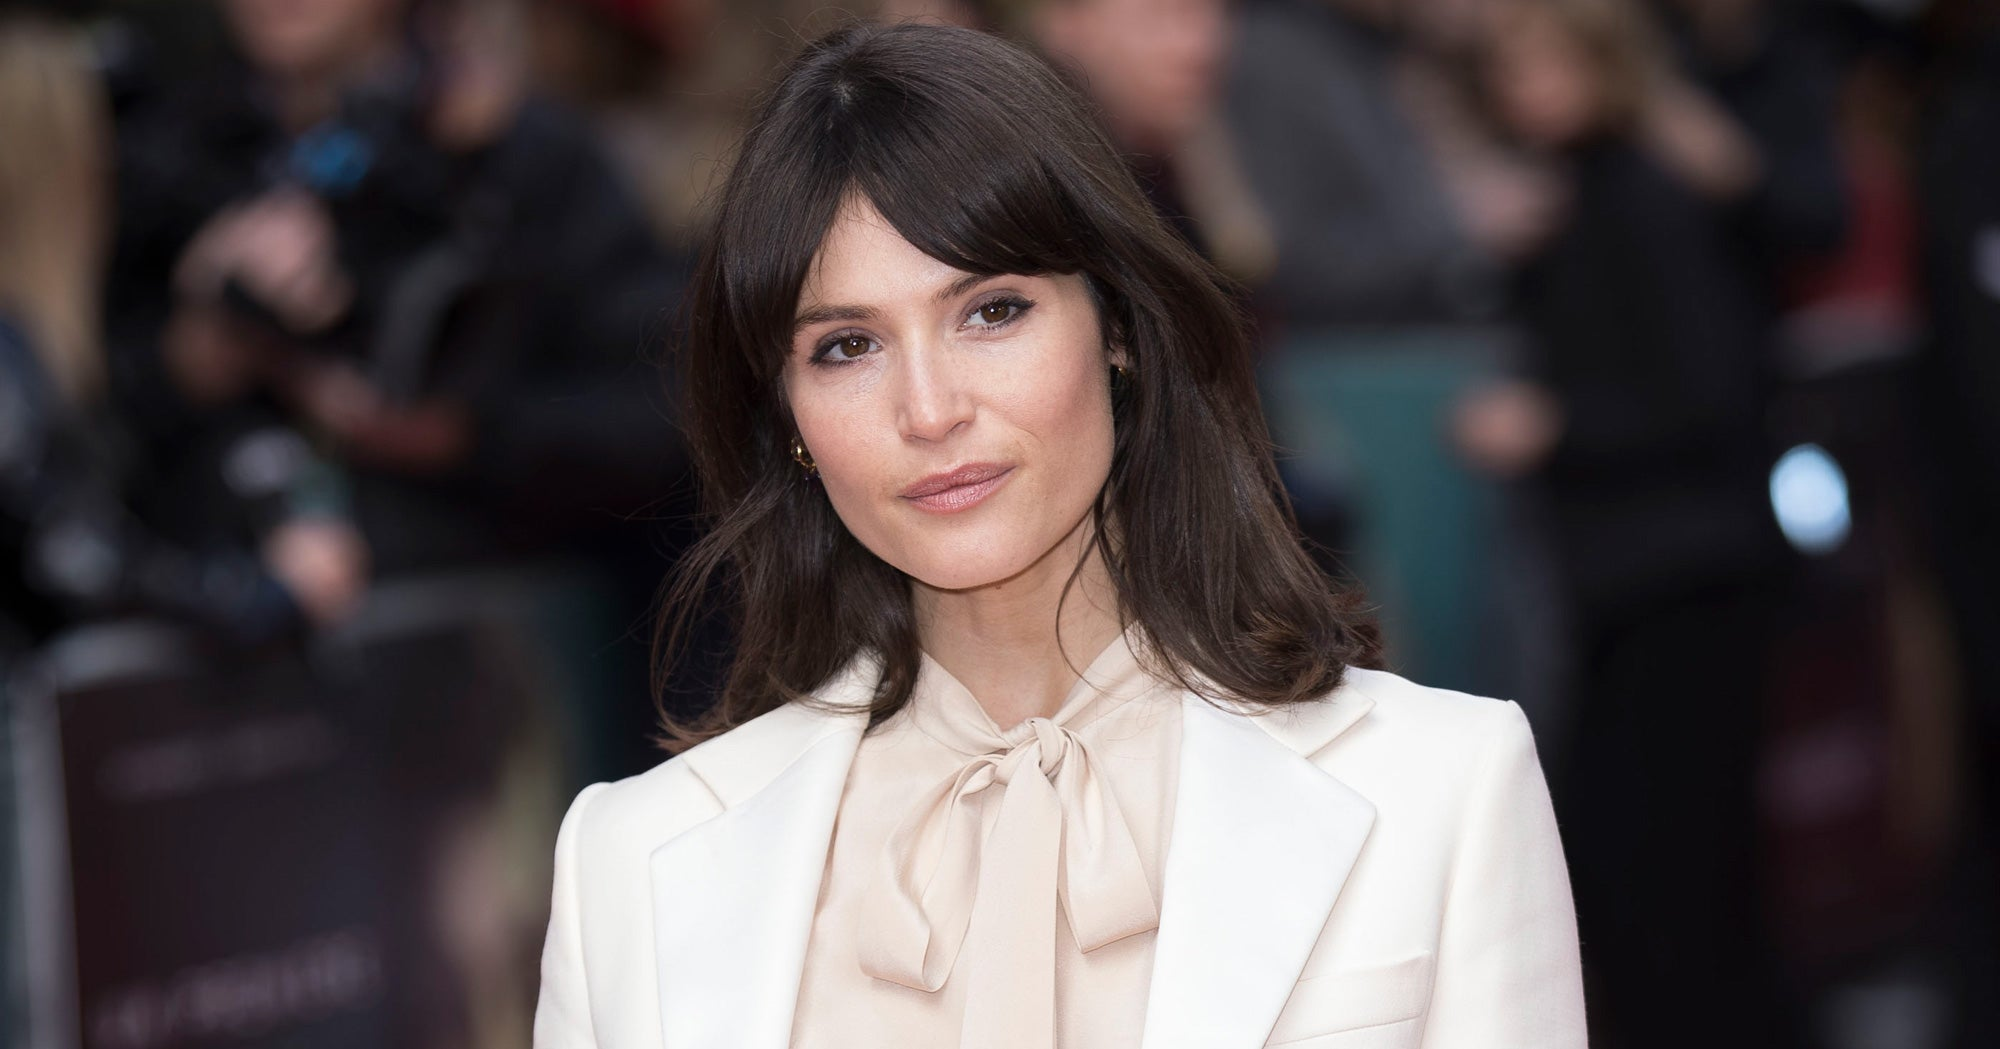 Gemma Arterton's New Shag Haircut Is Her Coolest Style Yet